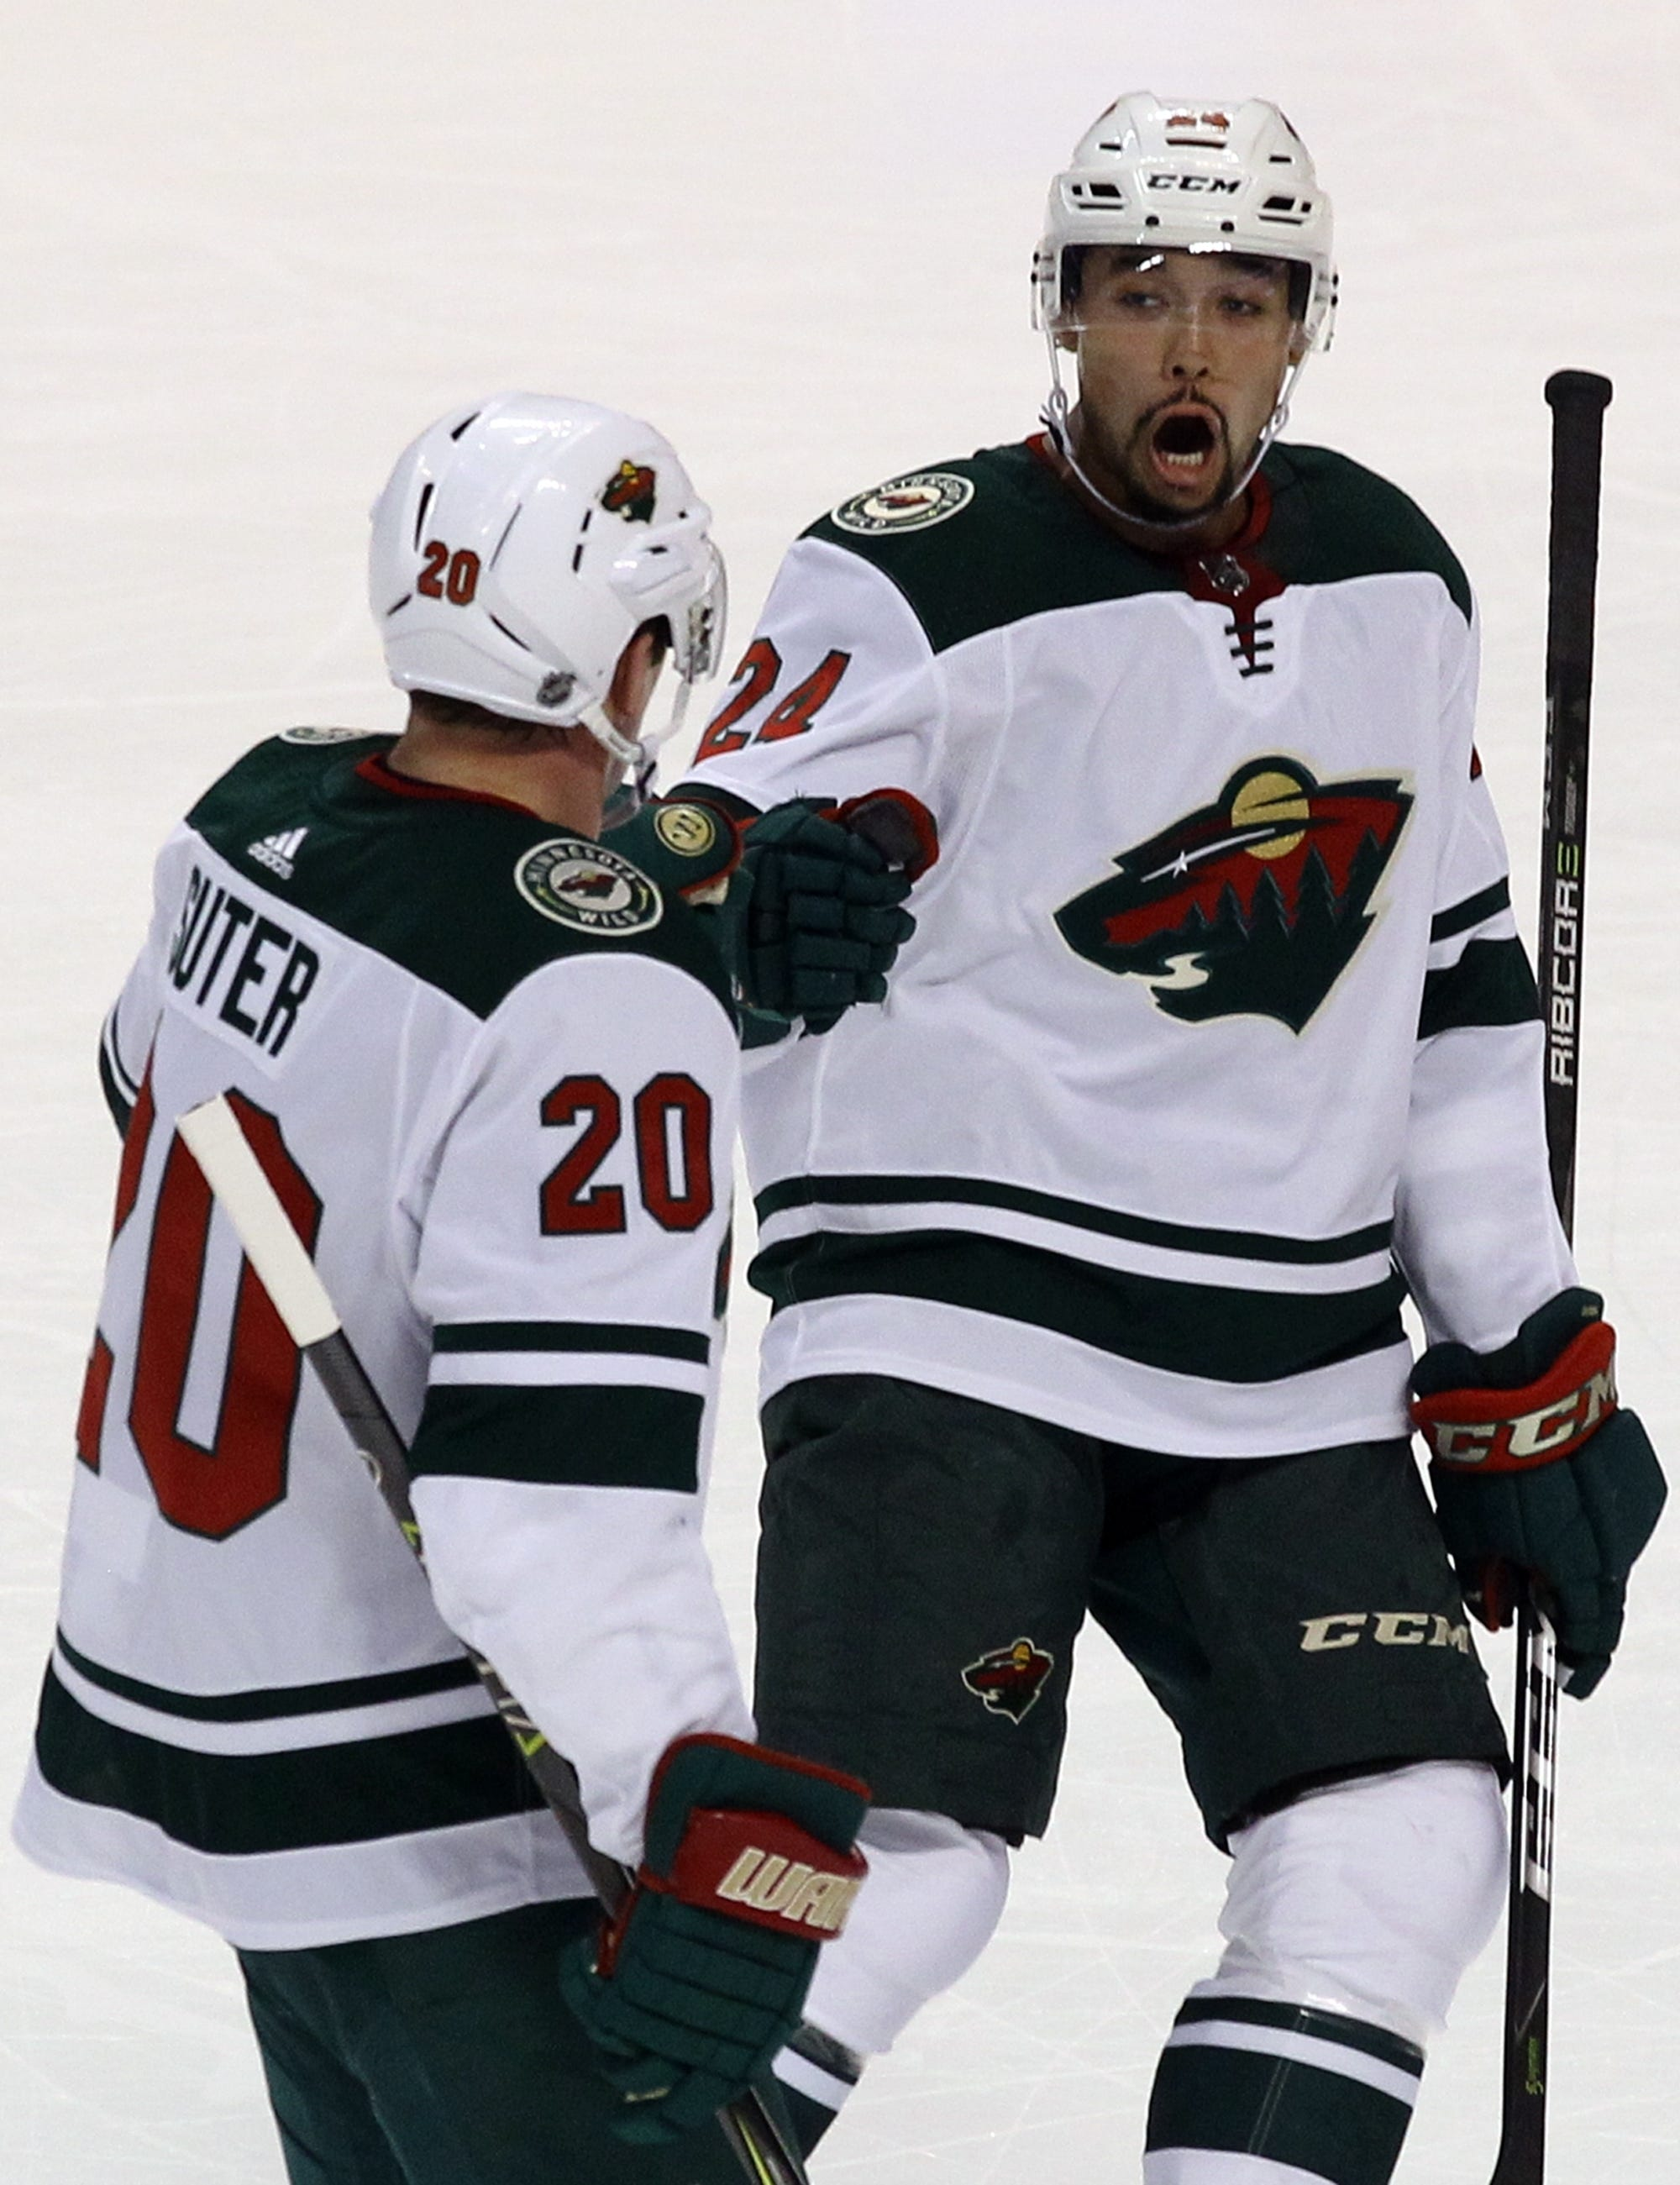 Huberdeau scores twice as Panthers top Wild 4-2